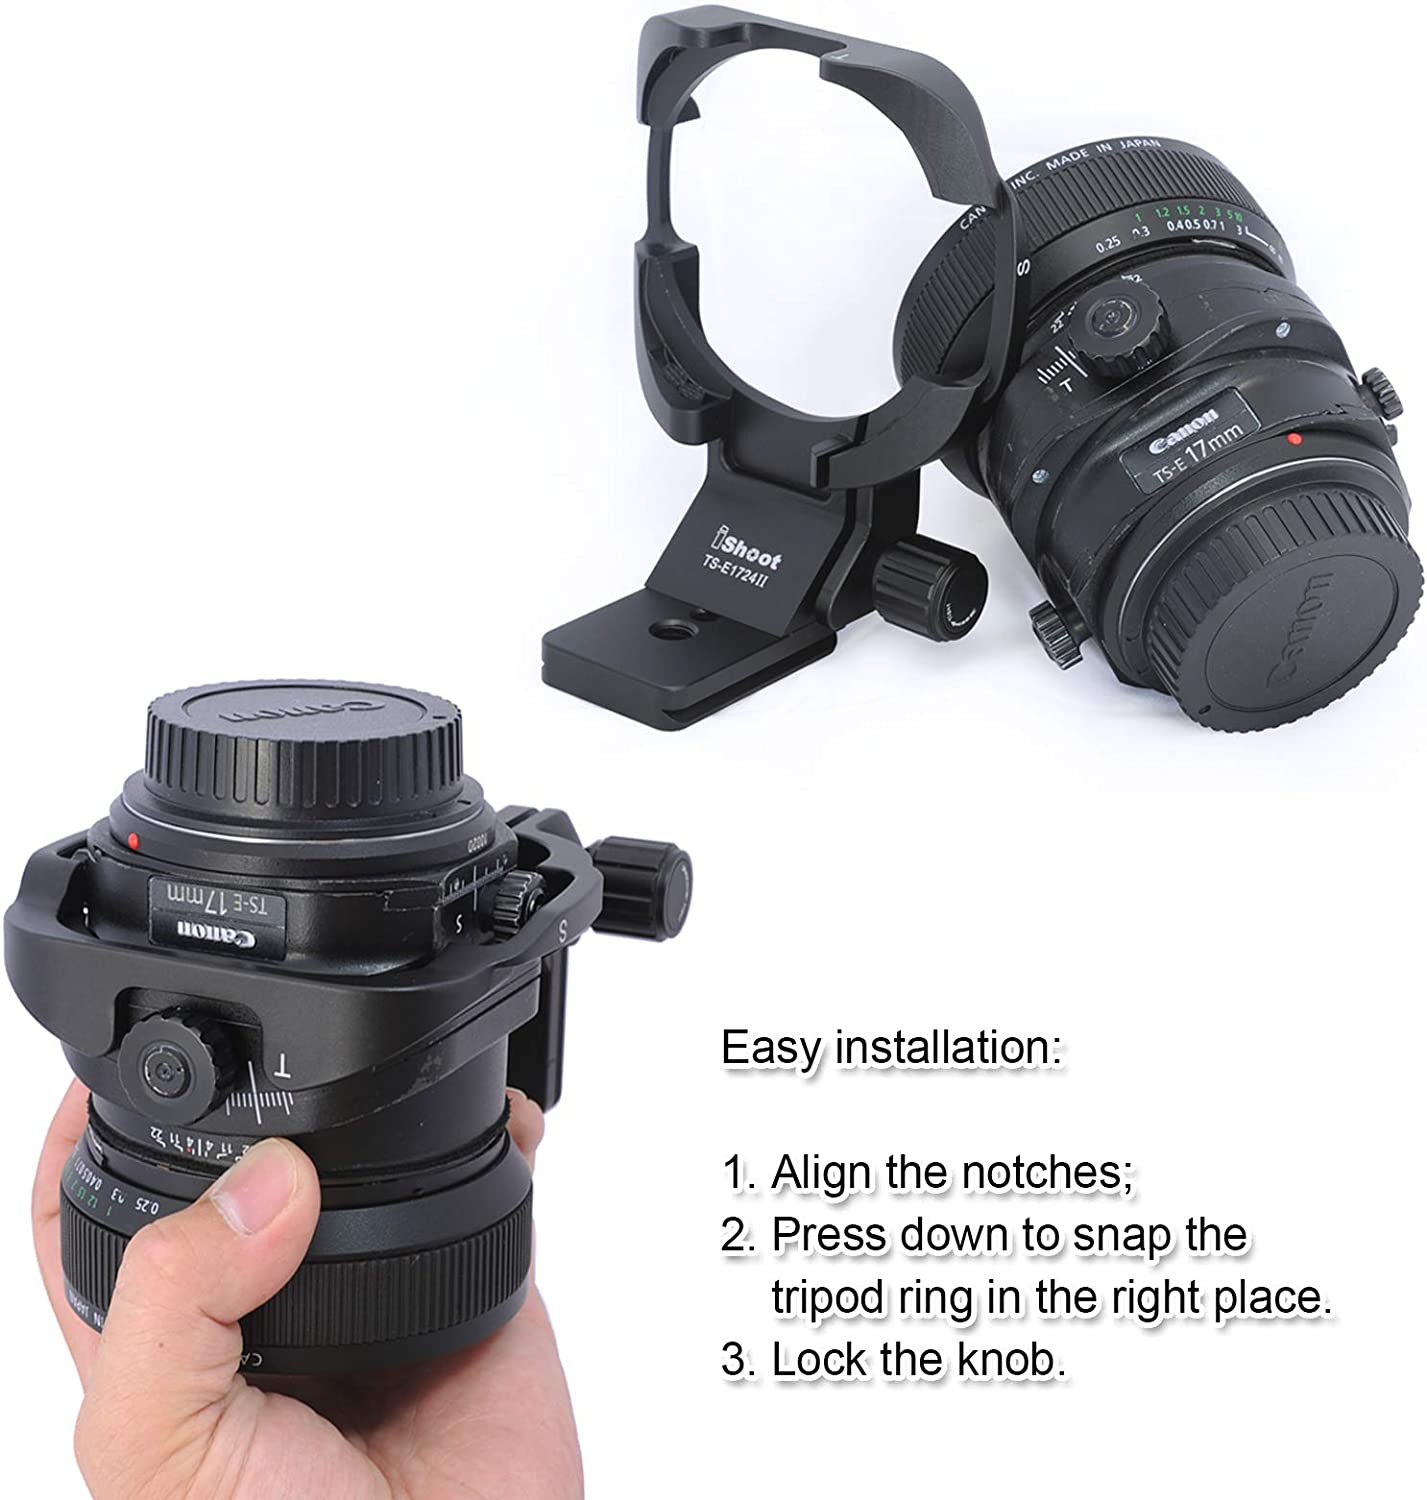 Camera Tripod Mount Ring Lens Collar for Canon TS-E 17mm f//4L and TS-E 24mm f//3.5L II Tilt-Shift Lens Built-in Arca Type Quick Release Plate with 1//4 and 3//8 Screw Hole for Arca-Swiss Tripod Head